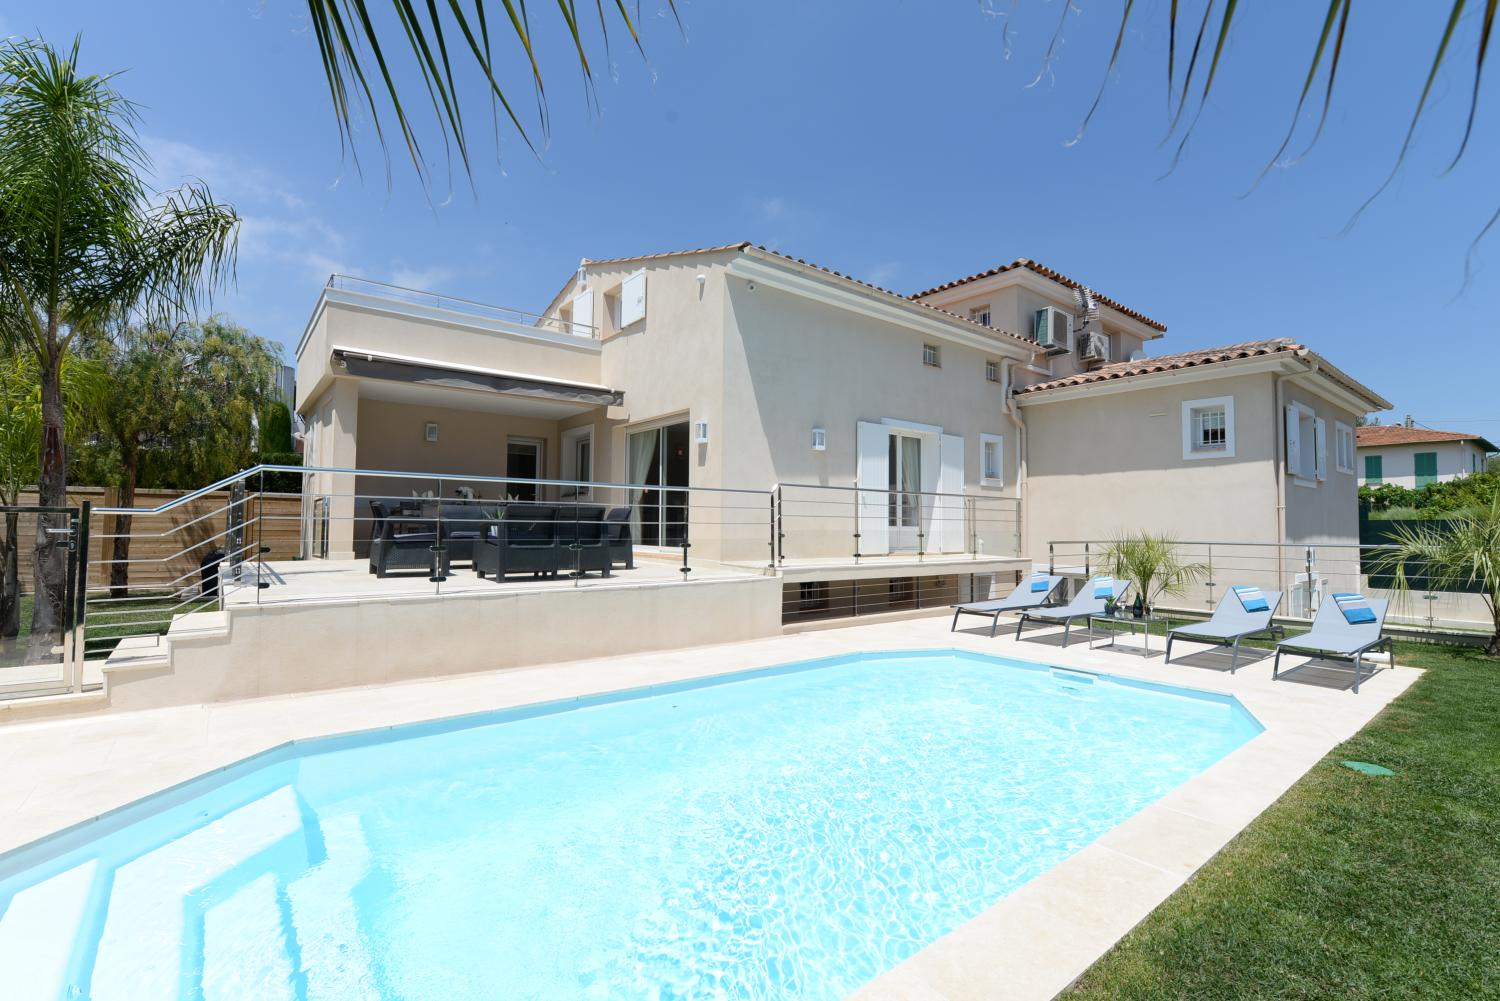 cagnes sur mer townhouse with private pool in Cagnes sur Mer